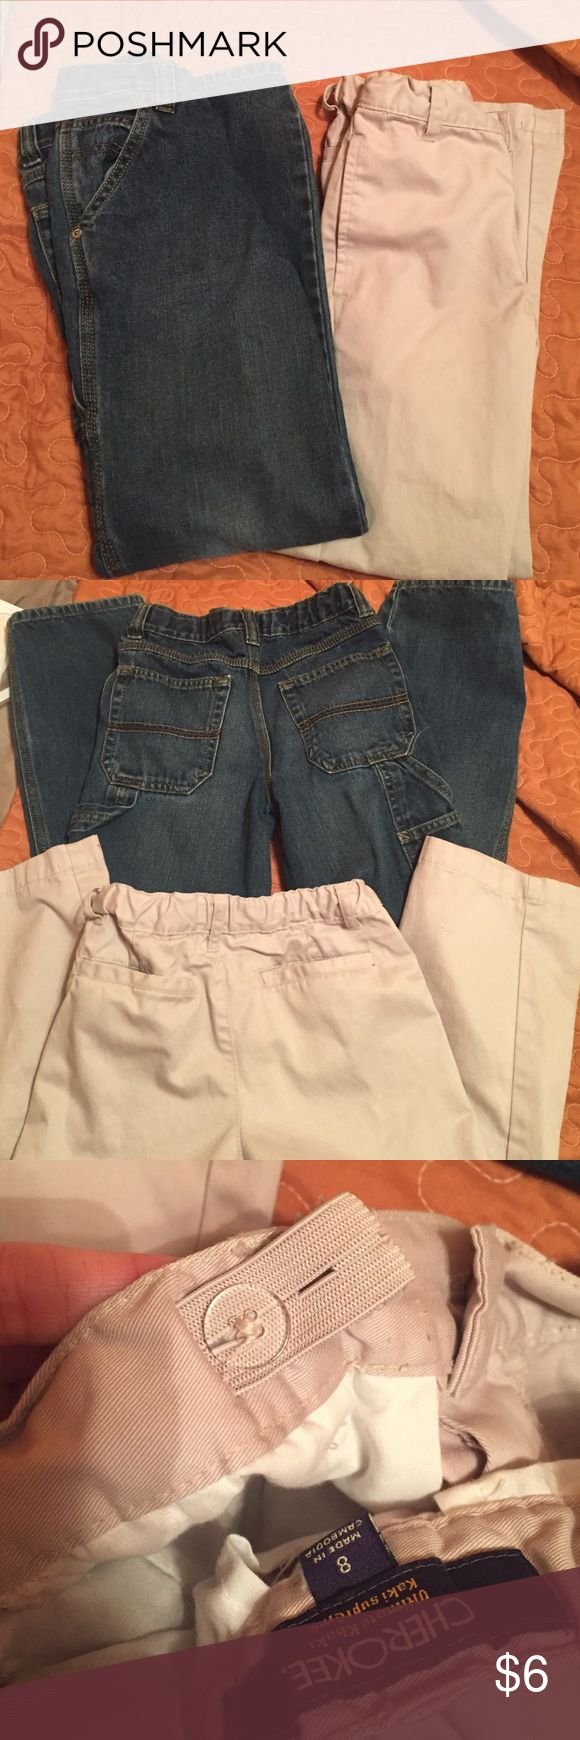 Boys Pant Bundle 2 pair Cargo jeans from children's place, khakis Cherokee brand from JCPenny, both size 8, good condition. Children's Place Bottoms Jeans